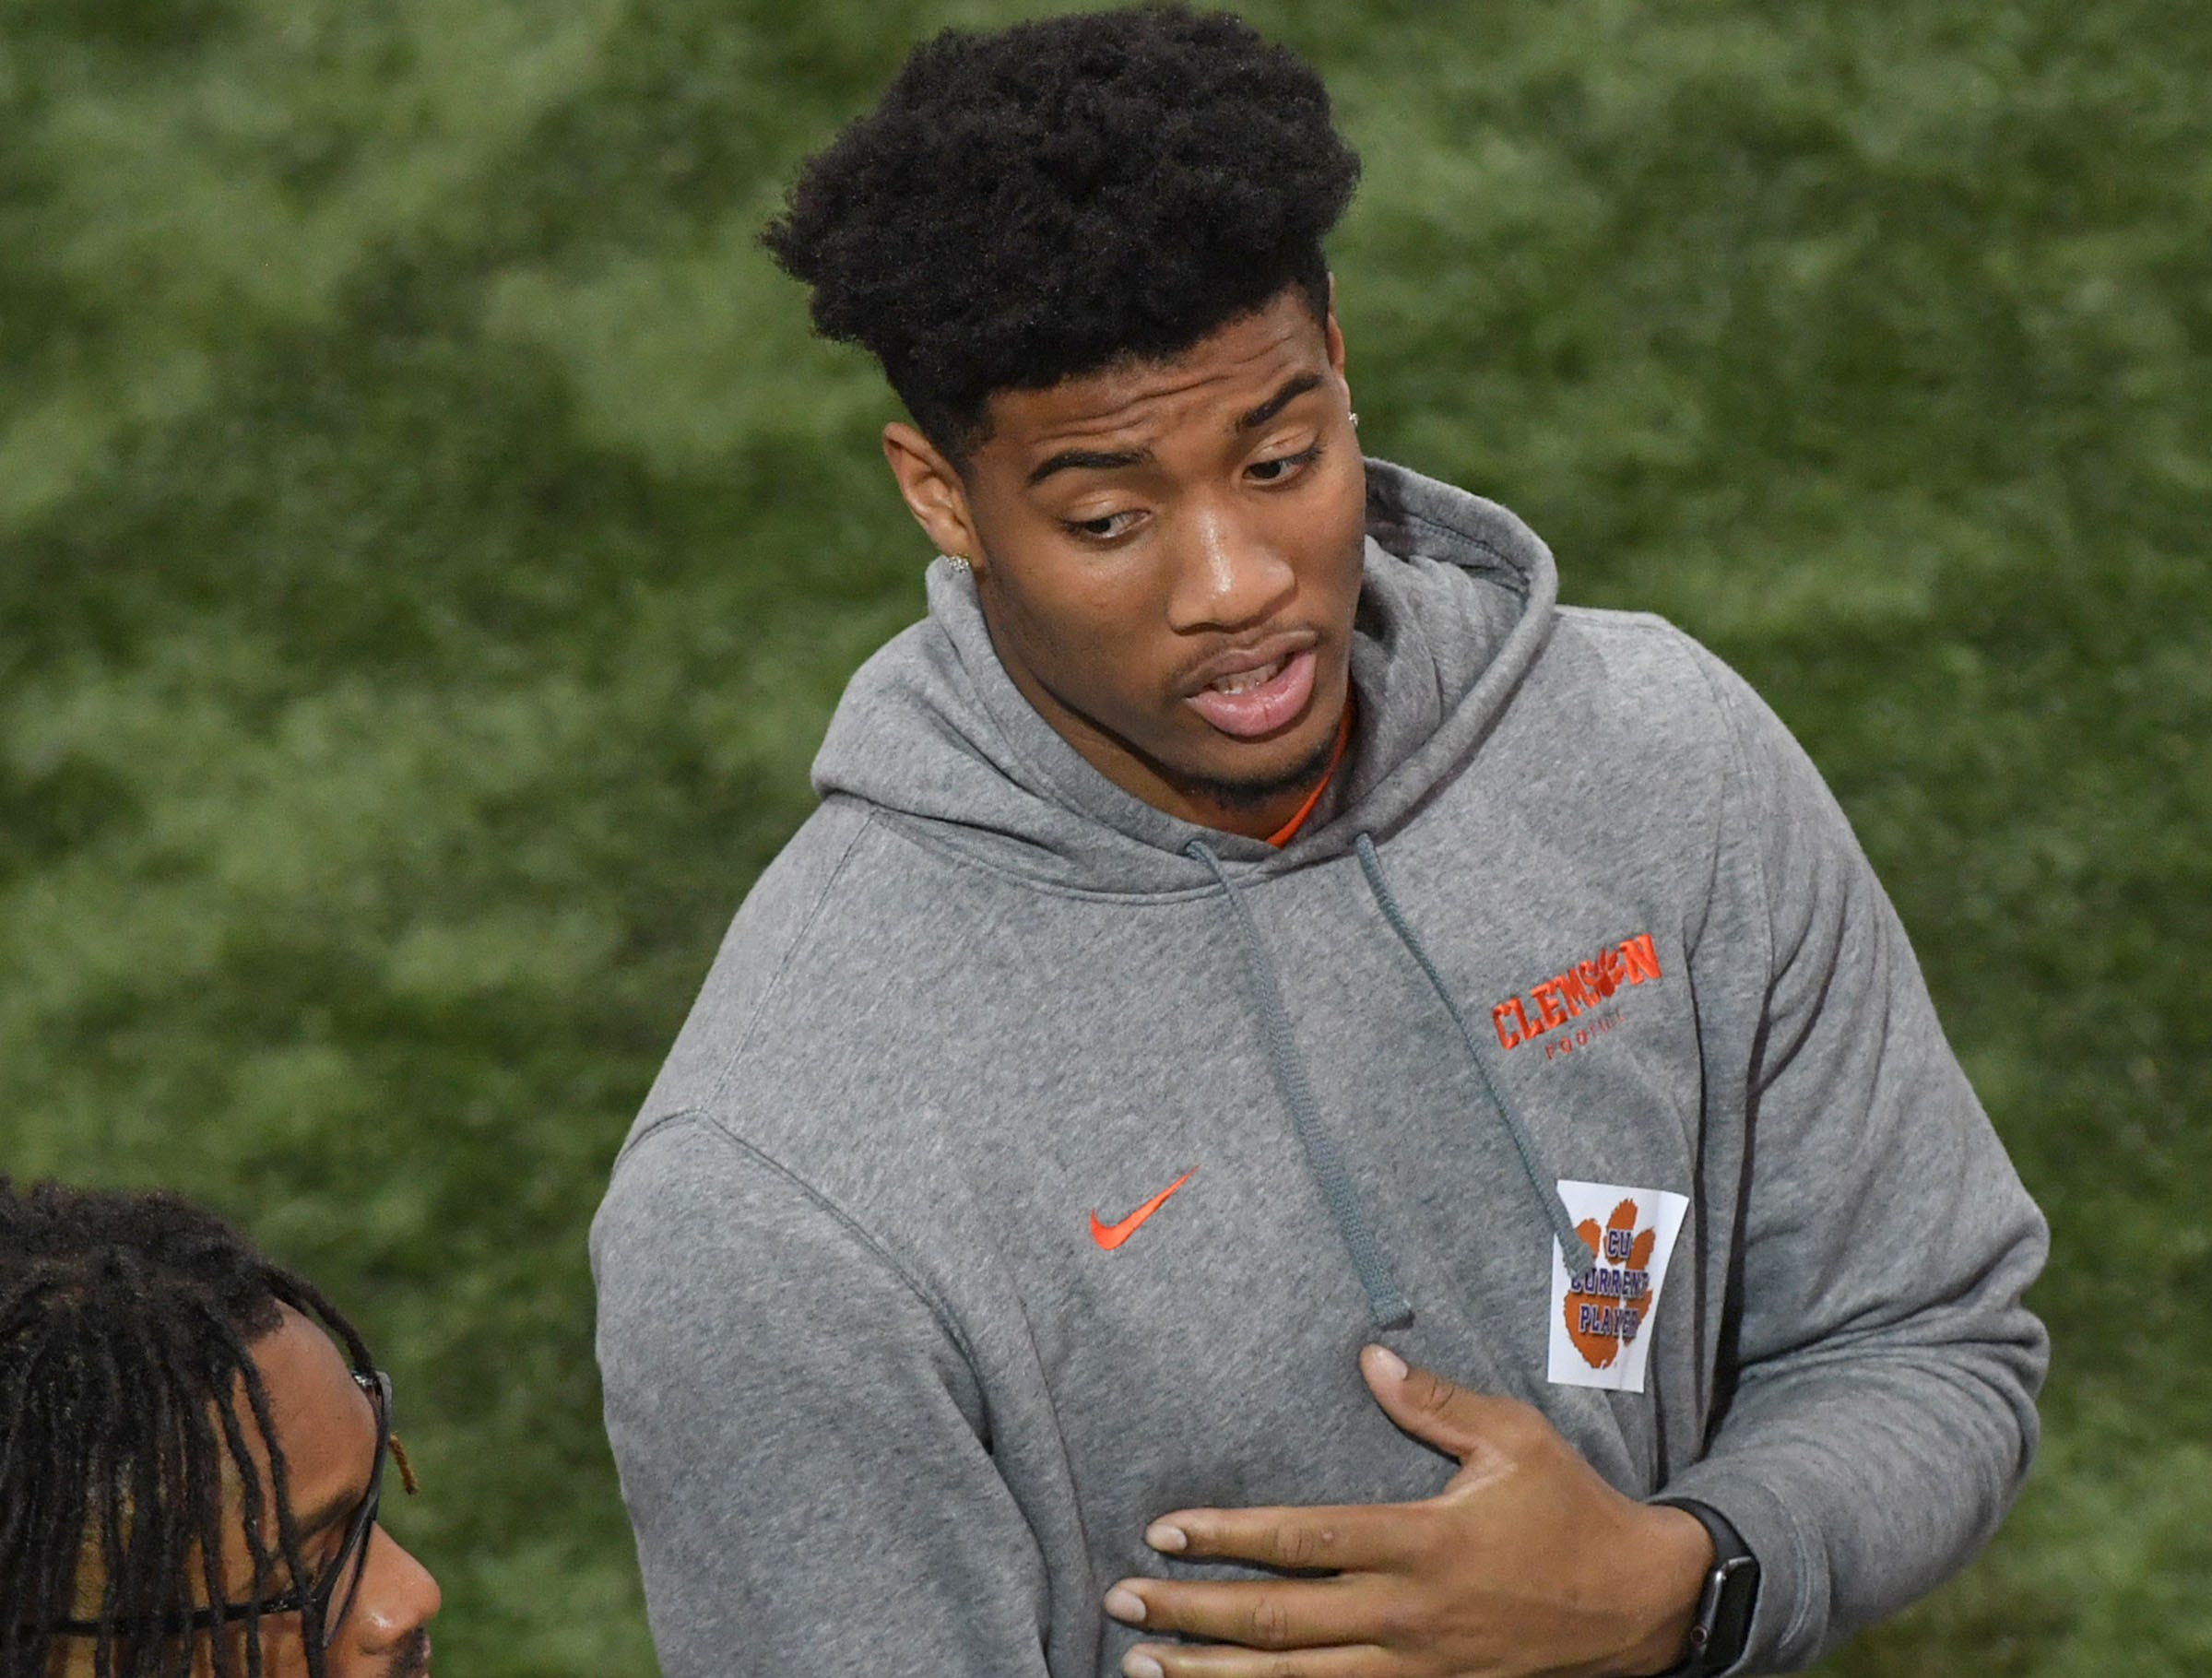 Clemson cornerback A.J. Terrell attends Clemson Pro Day at the Poe Indoor Facility in Clemson, S.C. Thursday, March 14, 2019.